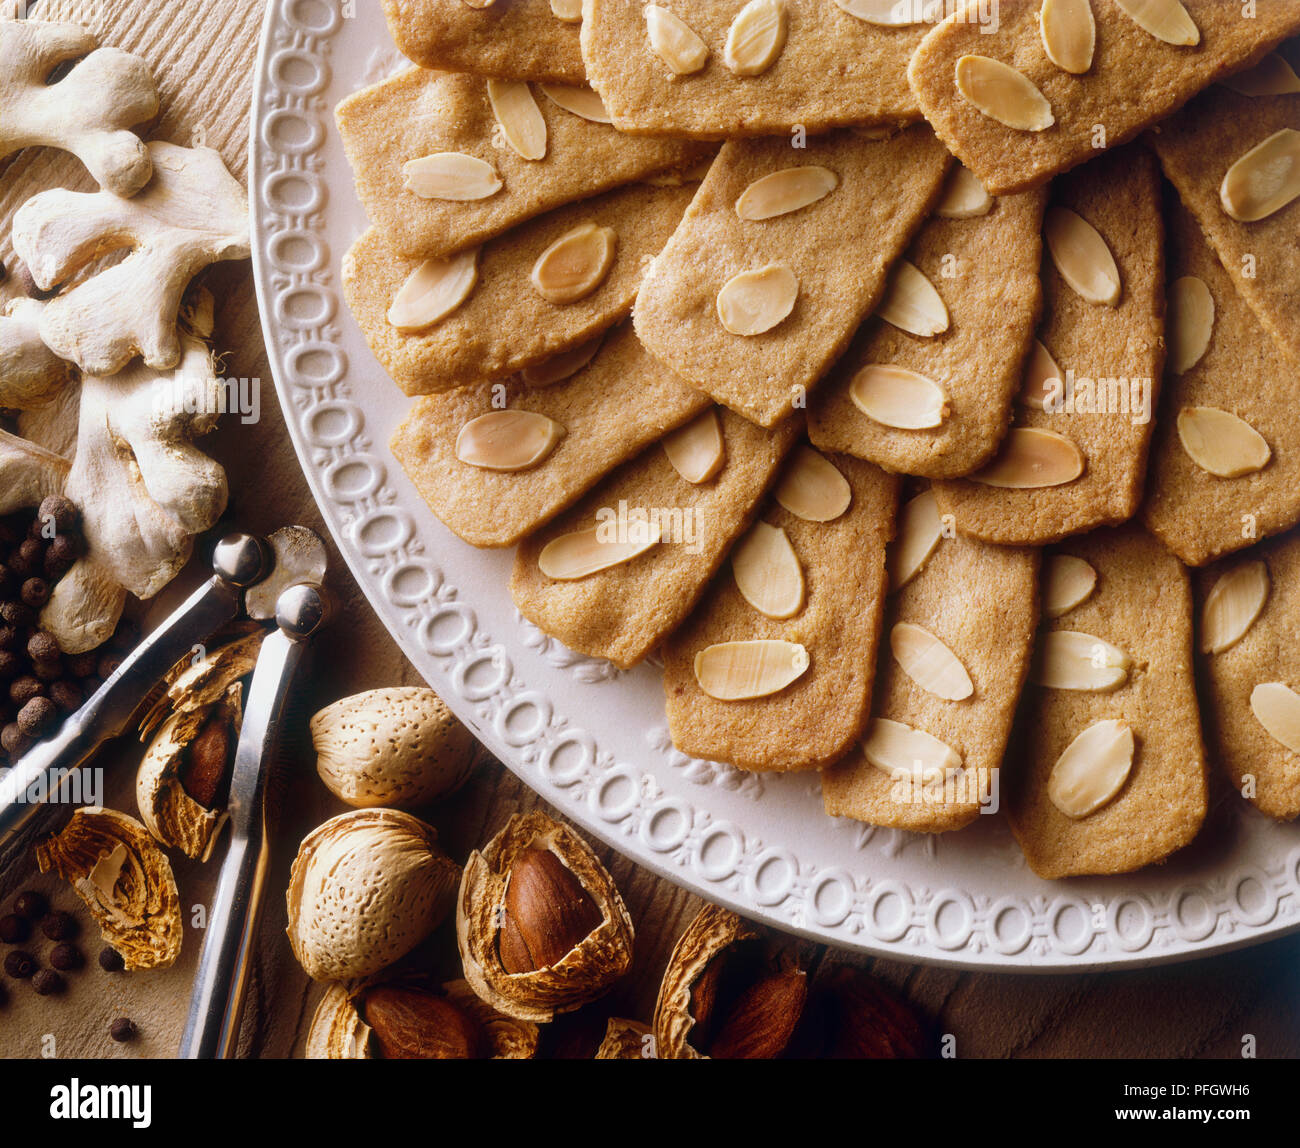 Speculaas Or Spekulatius Christmas Cookies Made With Ginger